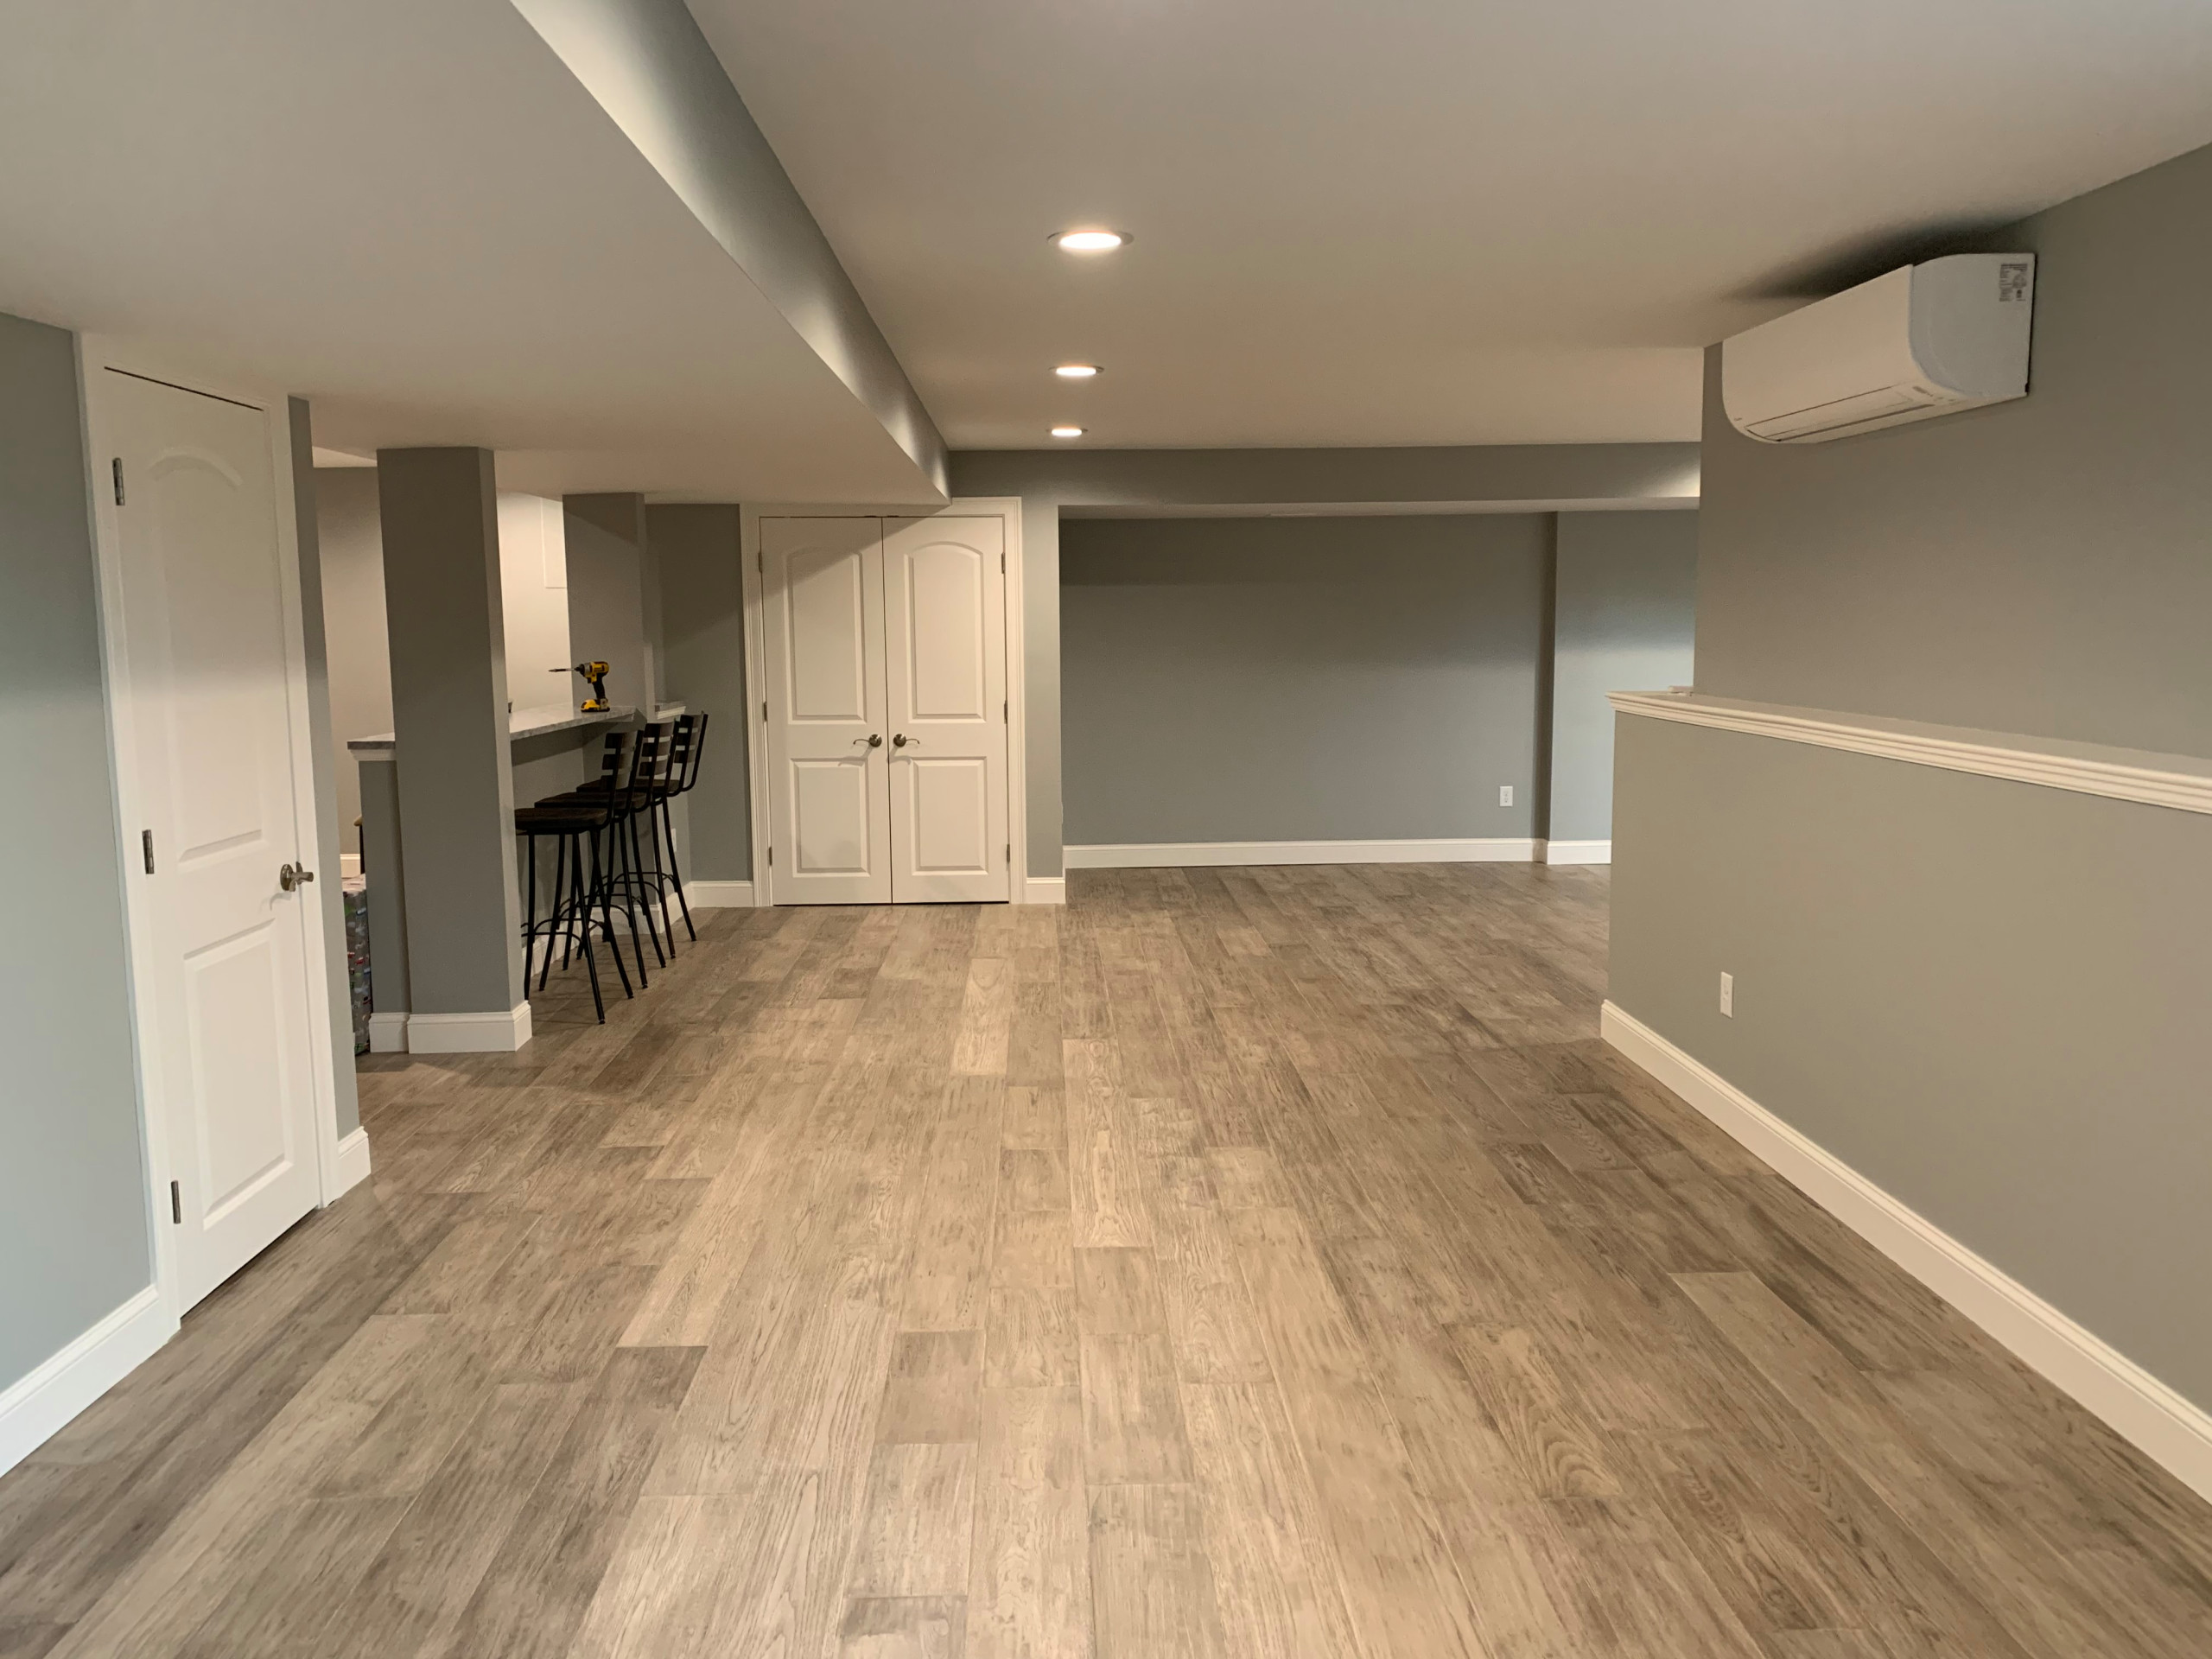 Basement Remodel: Home Bar & Theater